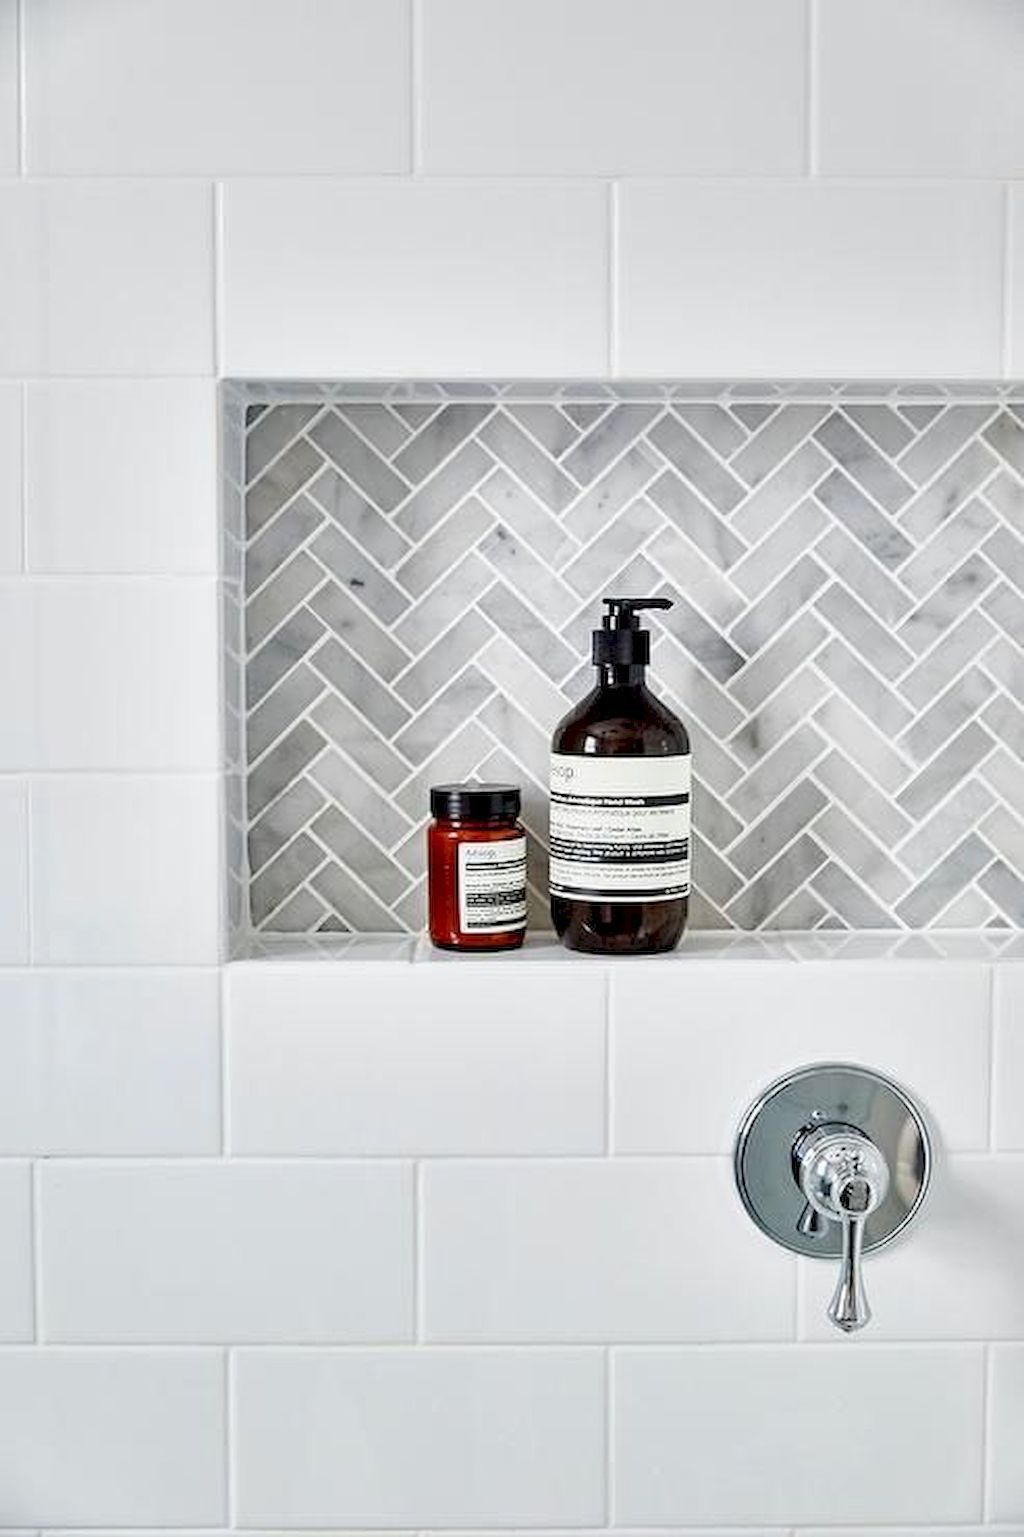 Inspiration bathroom tile pattern decorating ideas (52) | New house ...